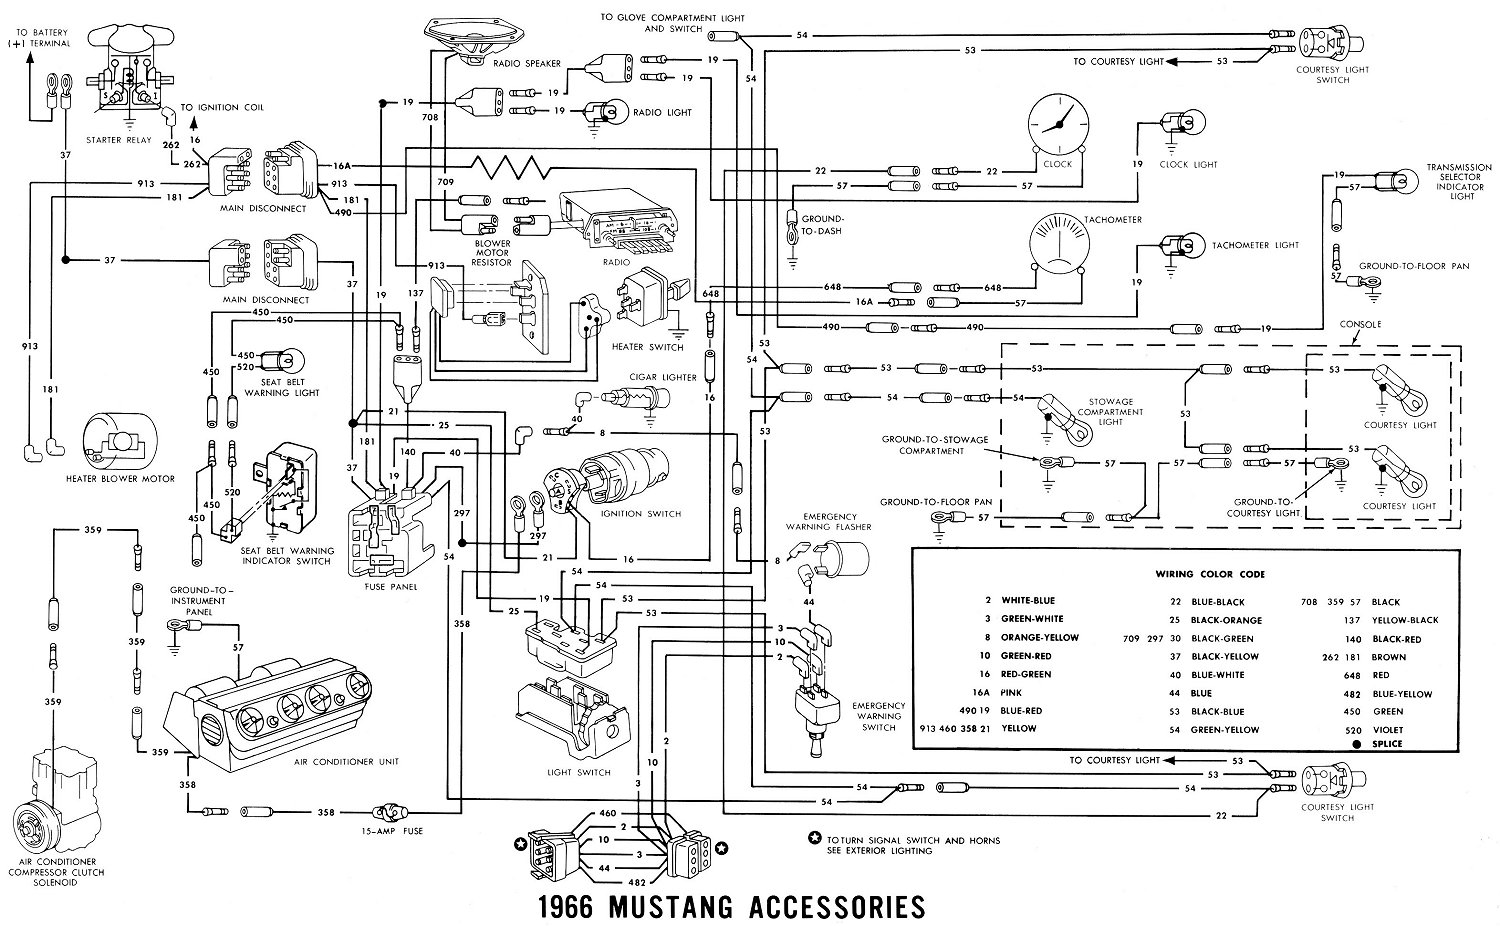 66acces1 1966 mustang wiring diagrams average joe restoration 2007 ford mustang gt wiring diagram at sewacar.co